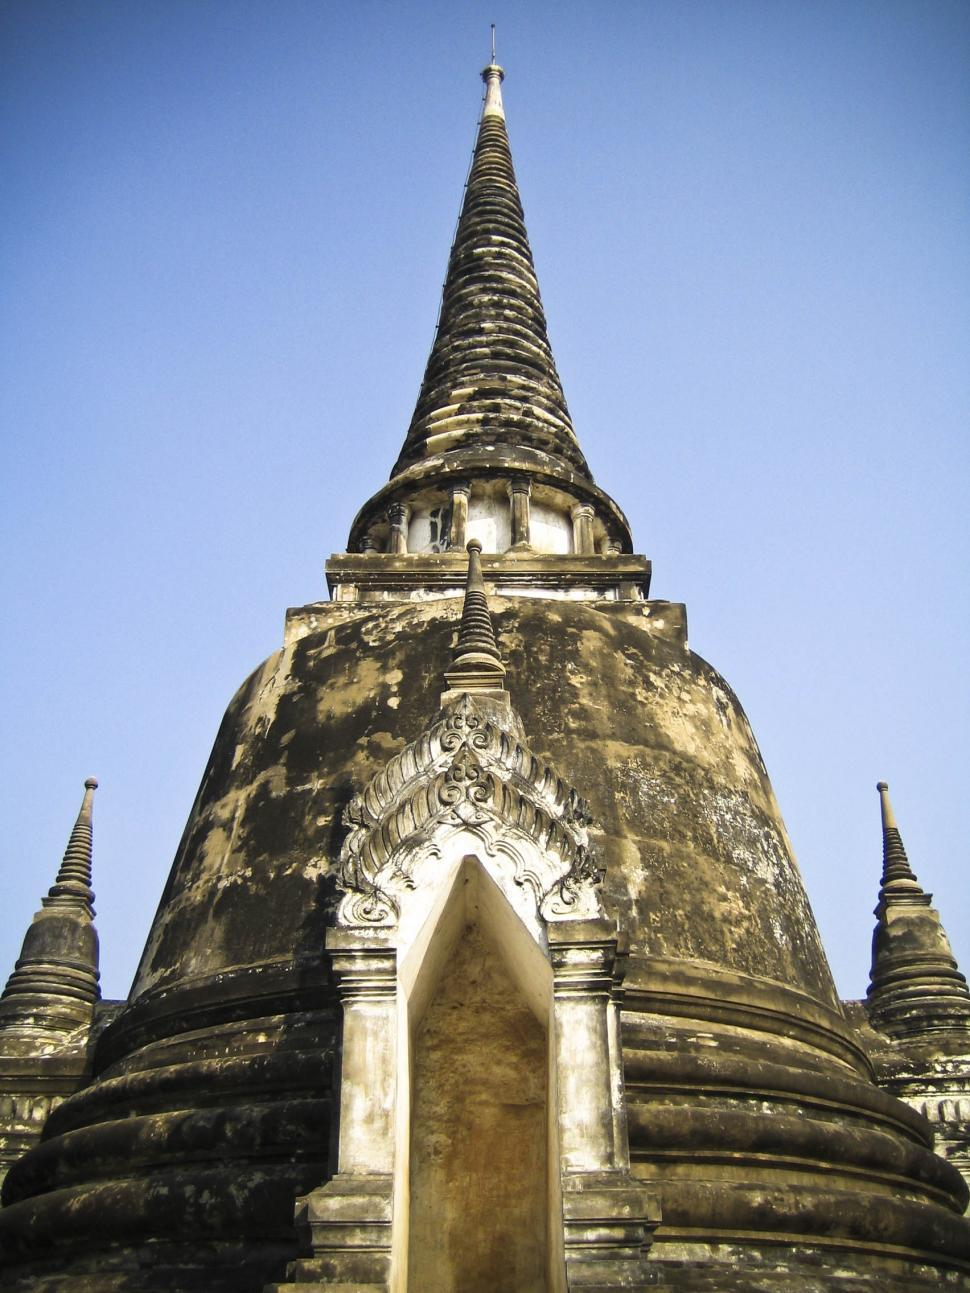 Download Free Stock HD Photo of old temple Online